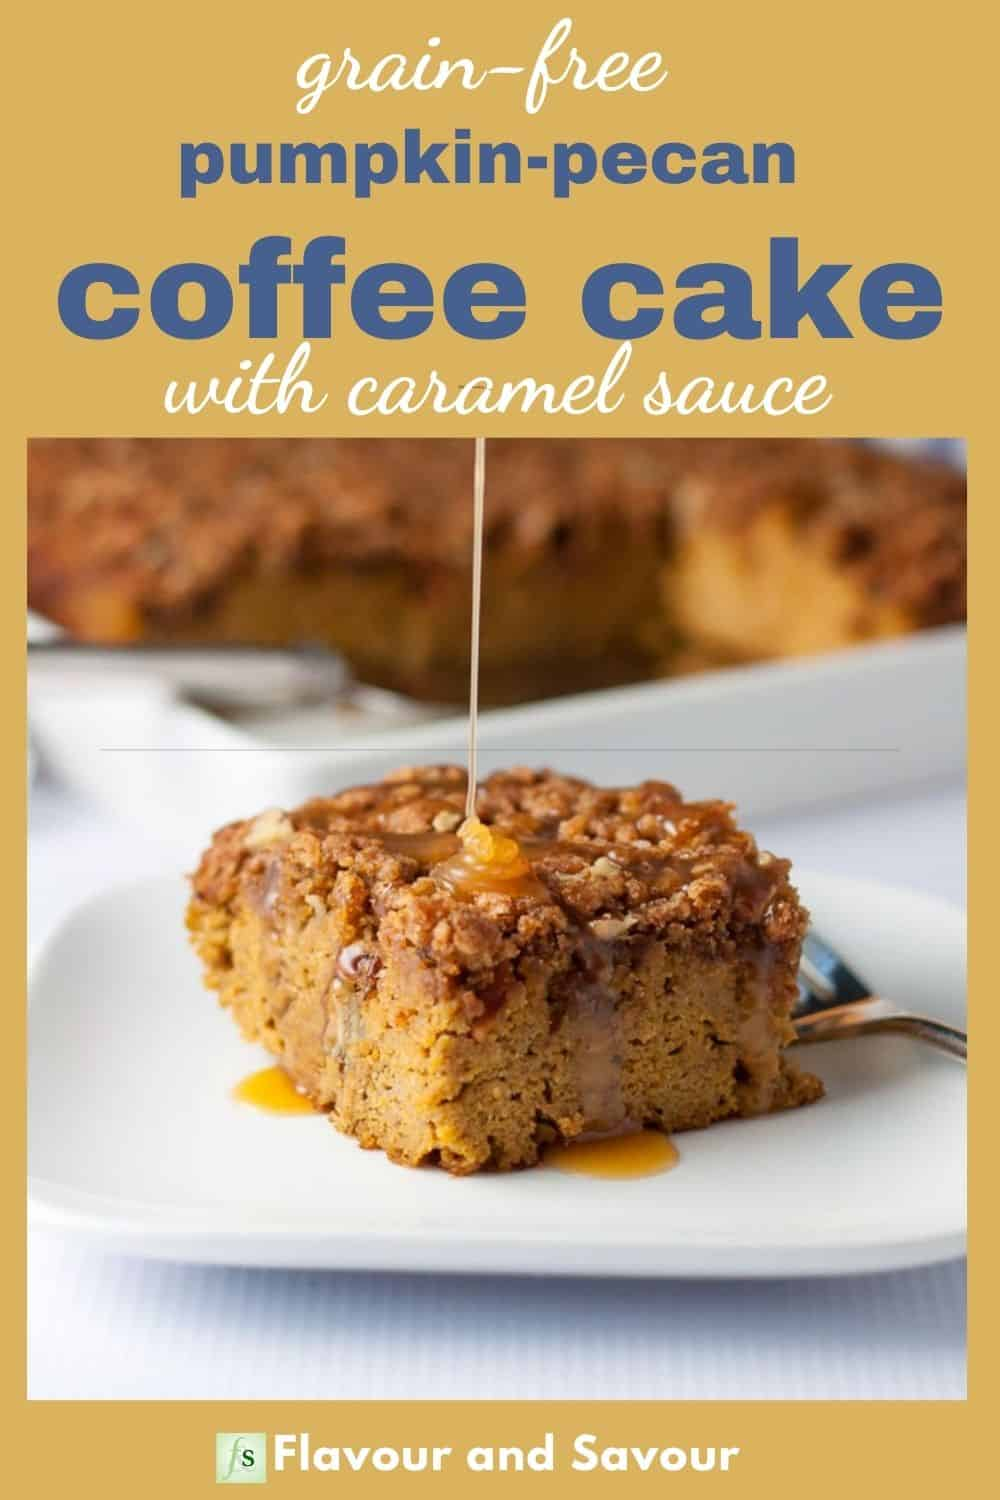 Image and Text overlay Pumpkin Pecan Caramel Coffee Cake